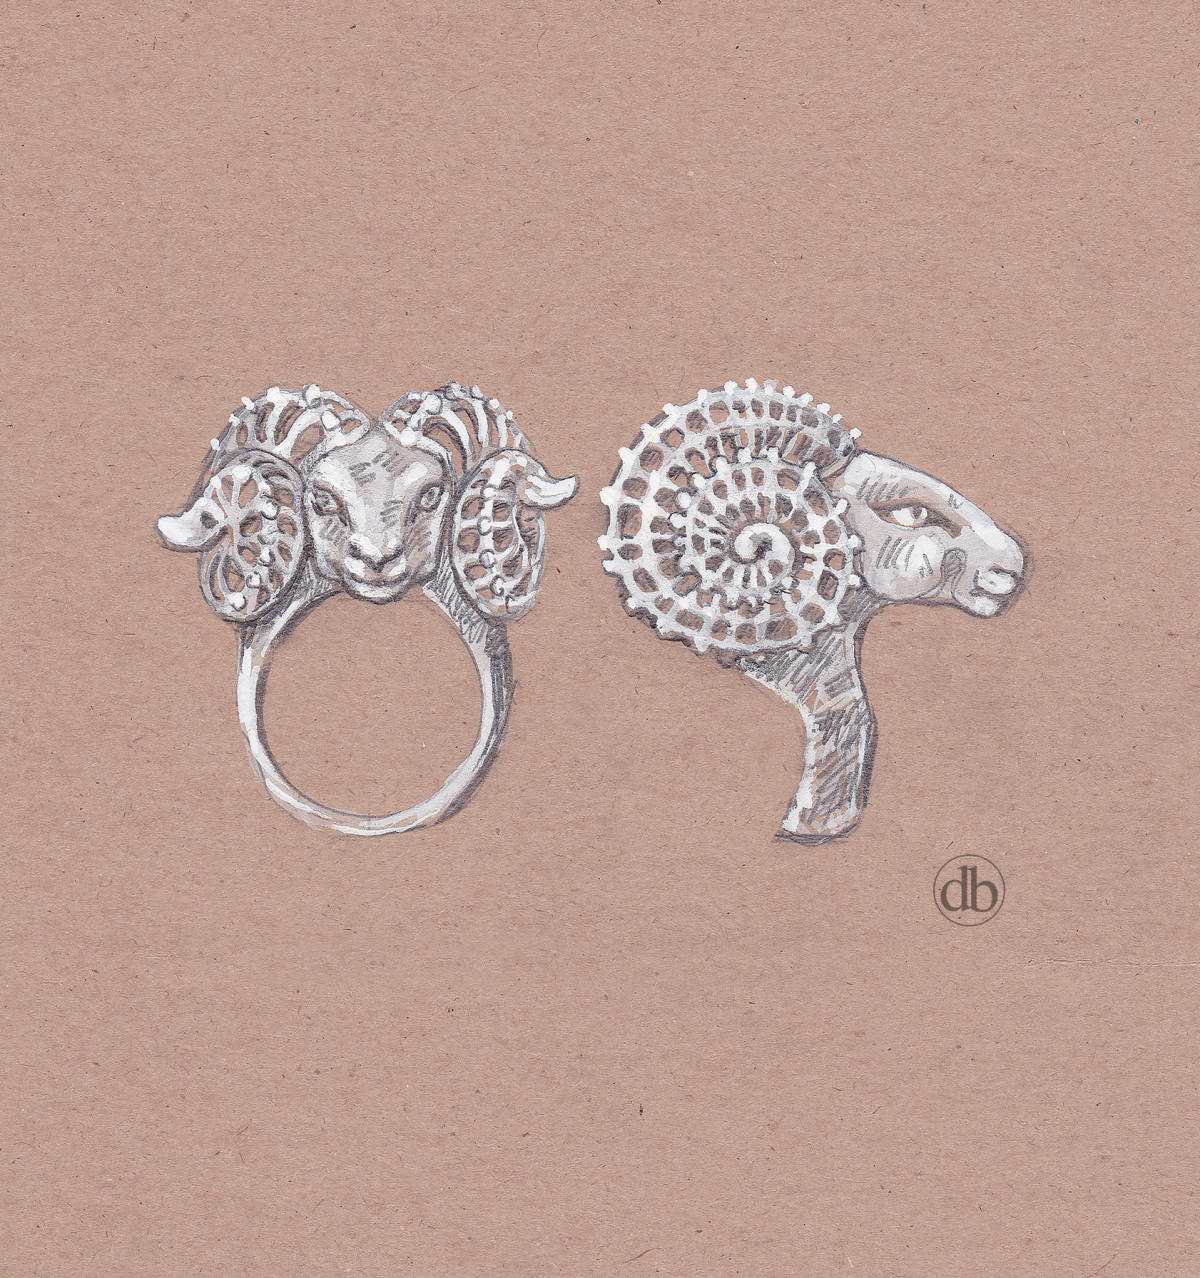 ram ring sketch